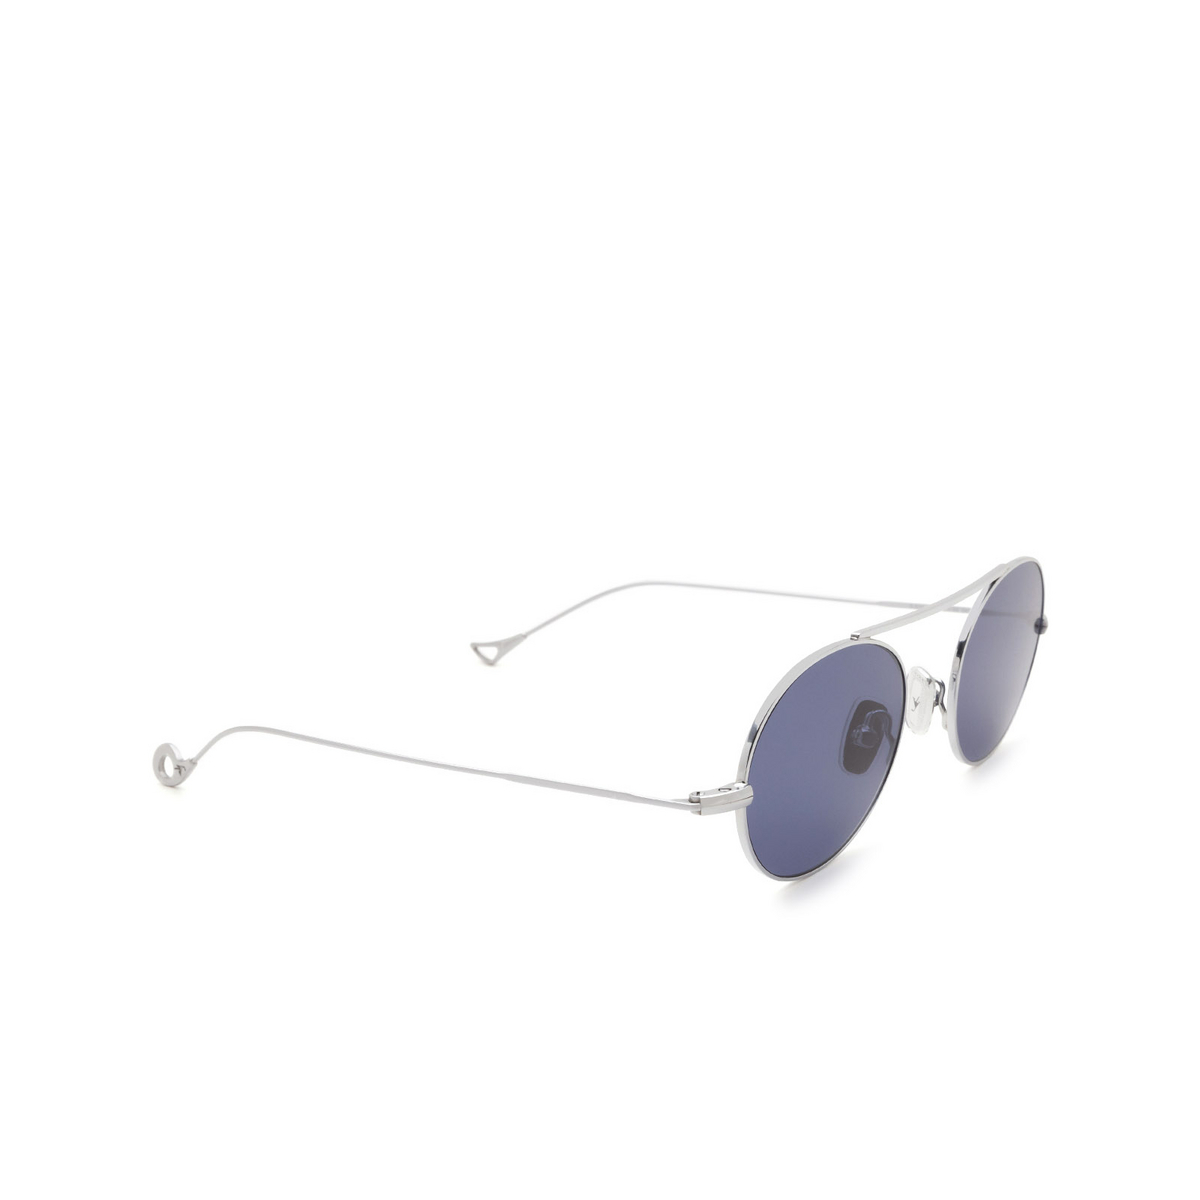 Eyepetizer® Oval Sunglasses: S.eularia color Silver C.1-39 - three-quarters view.